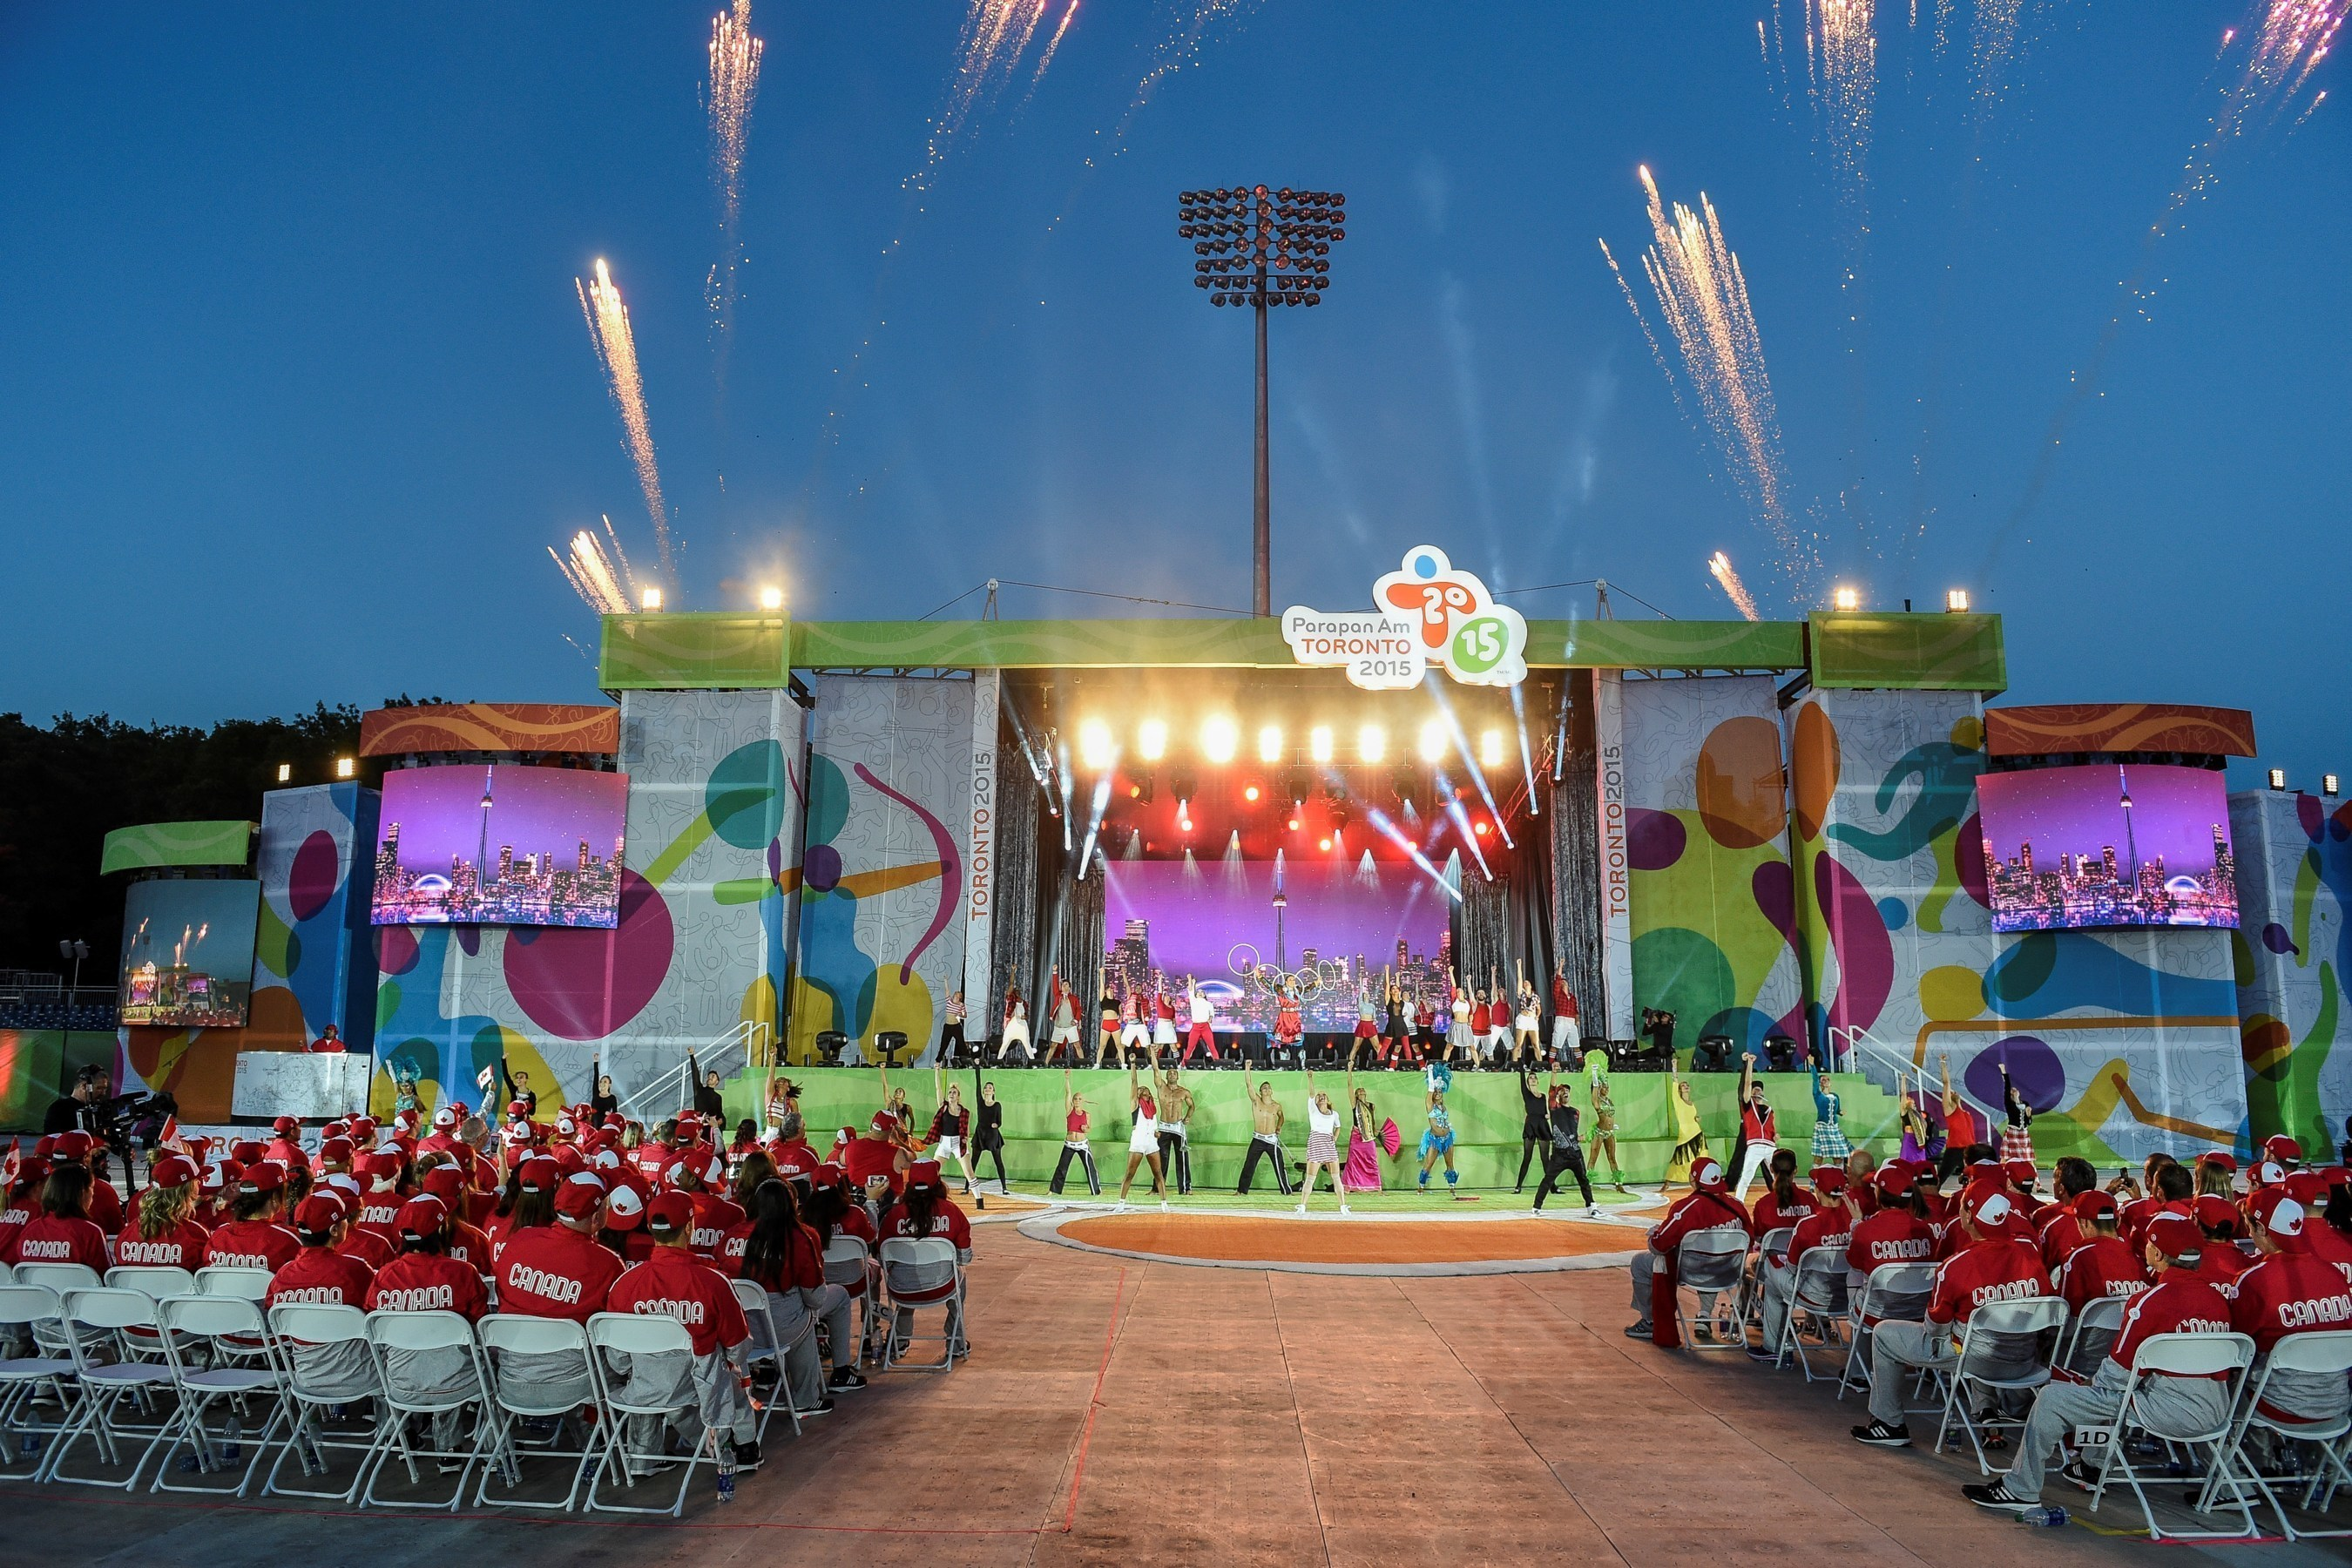 TO2015 Hosts Opening Ceremony of Largest Ever Parapan Am Games